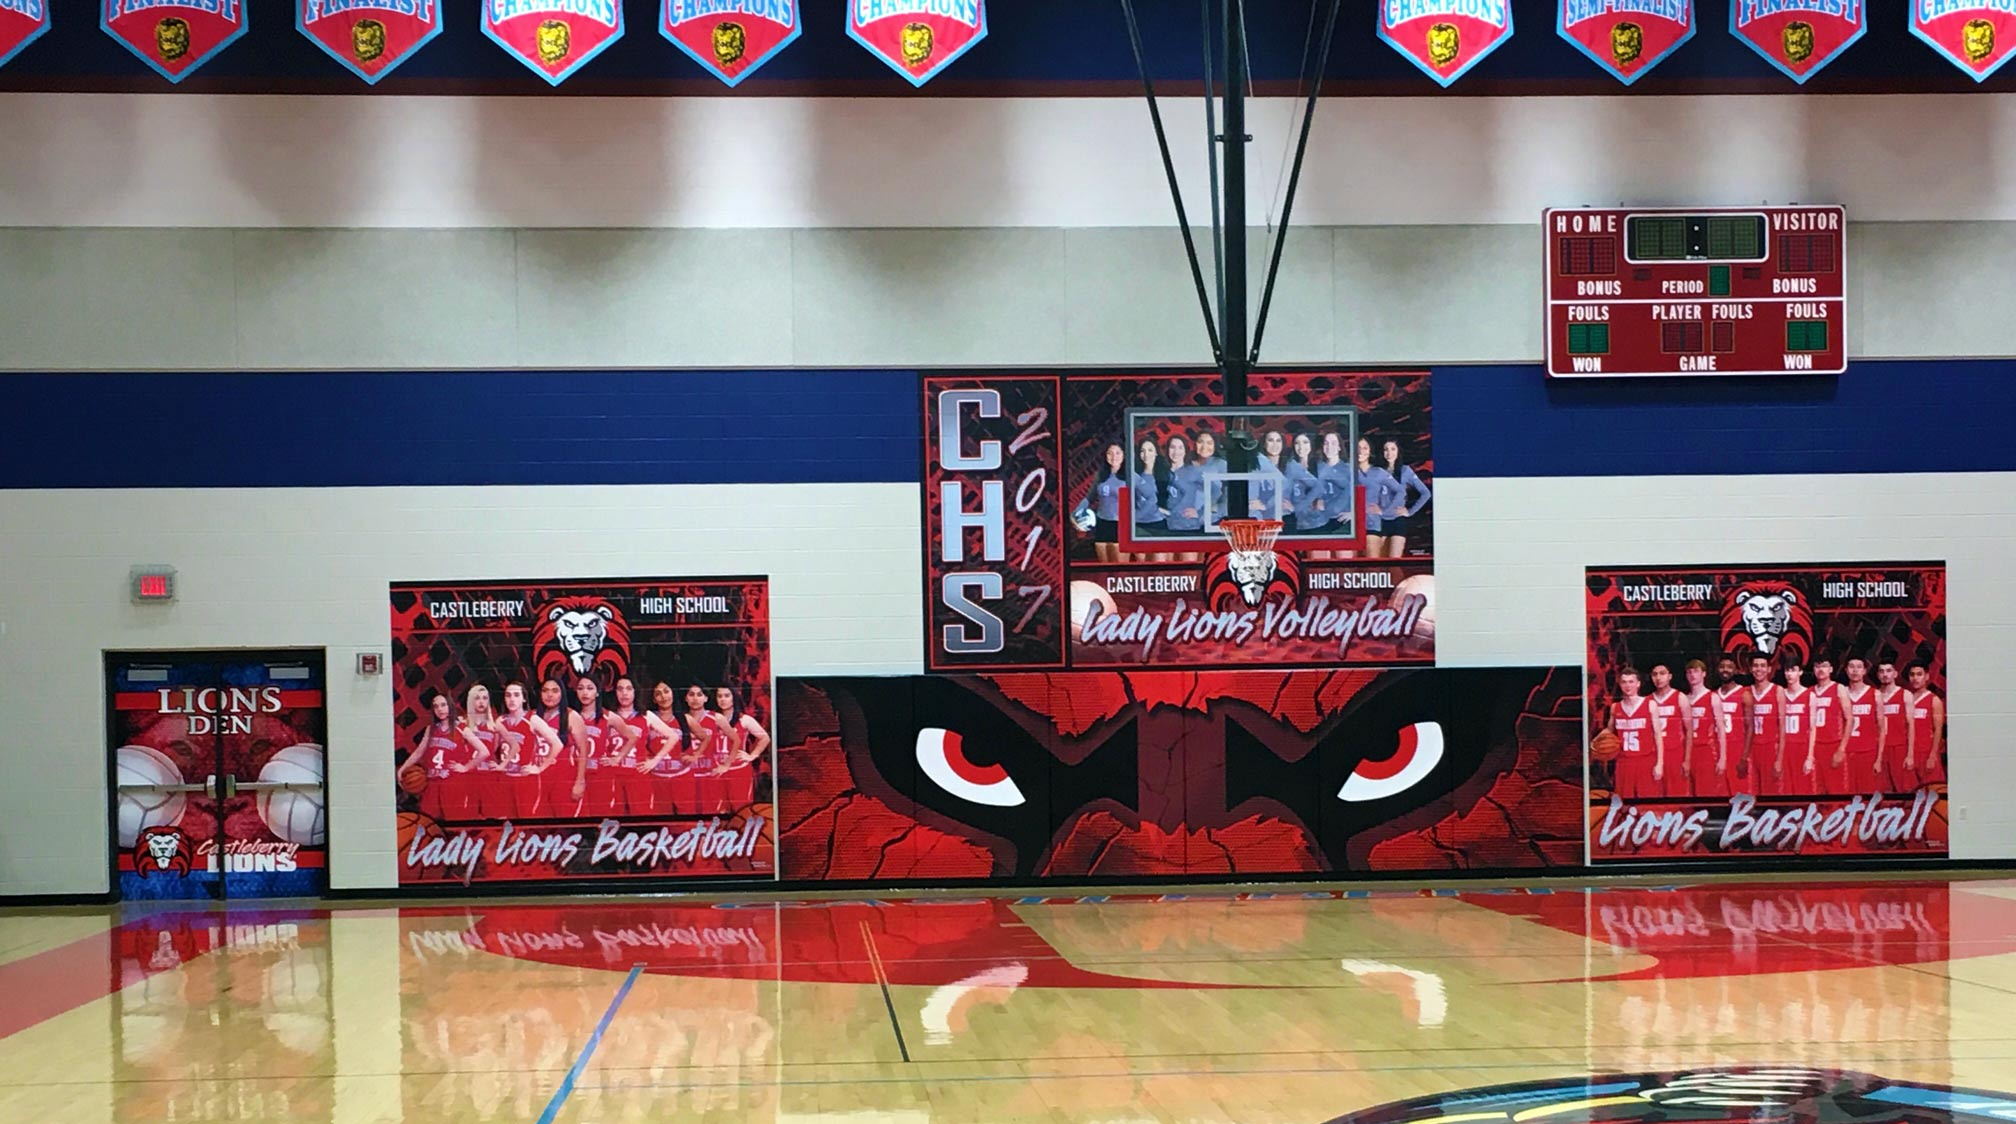 Athletic Facility Wall Wraps